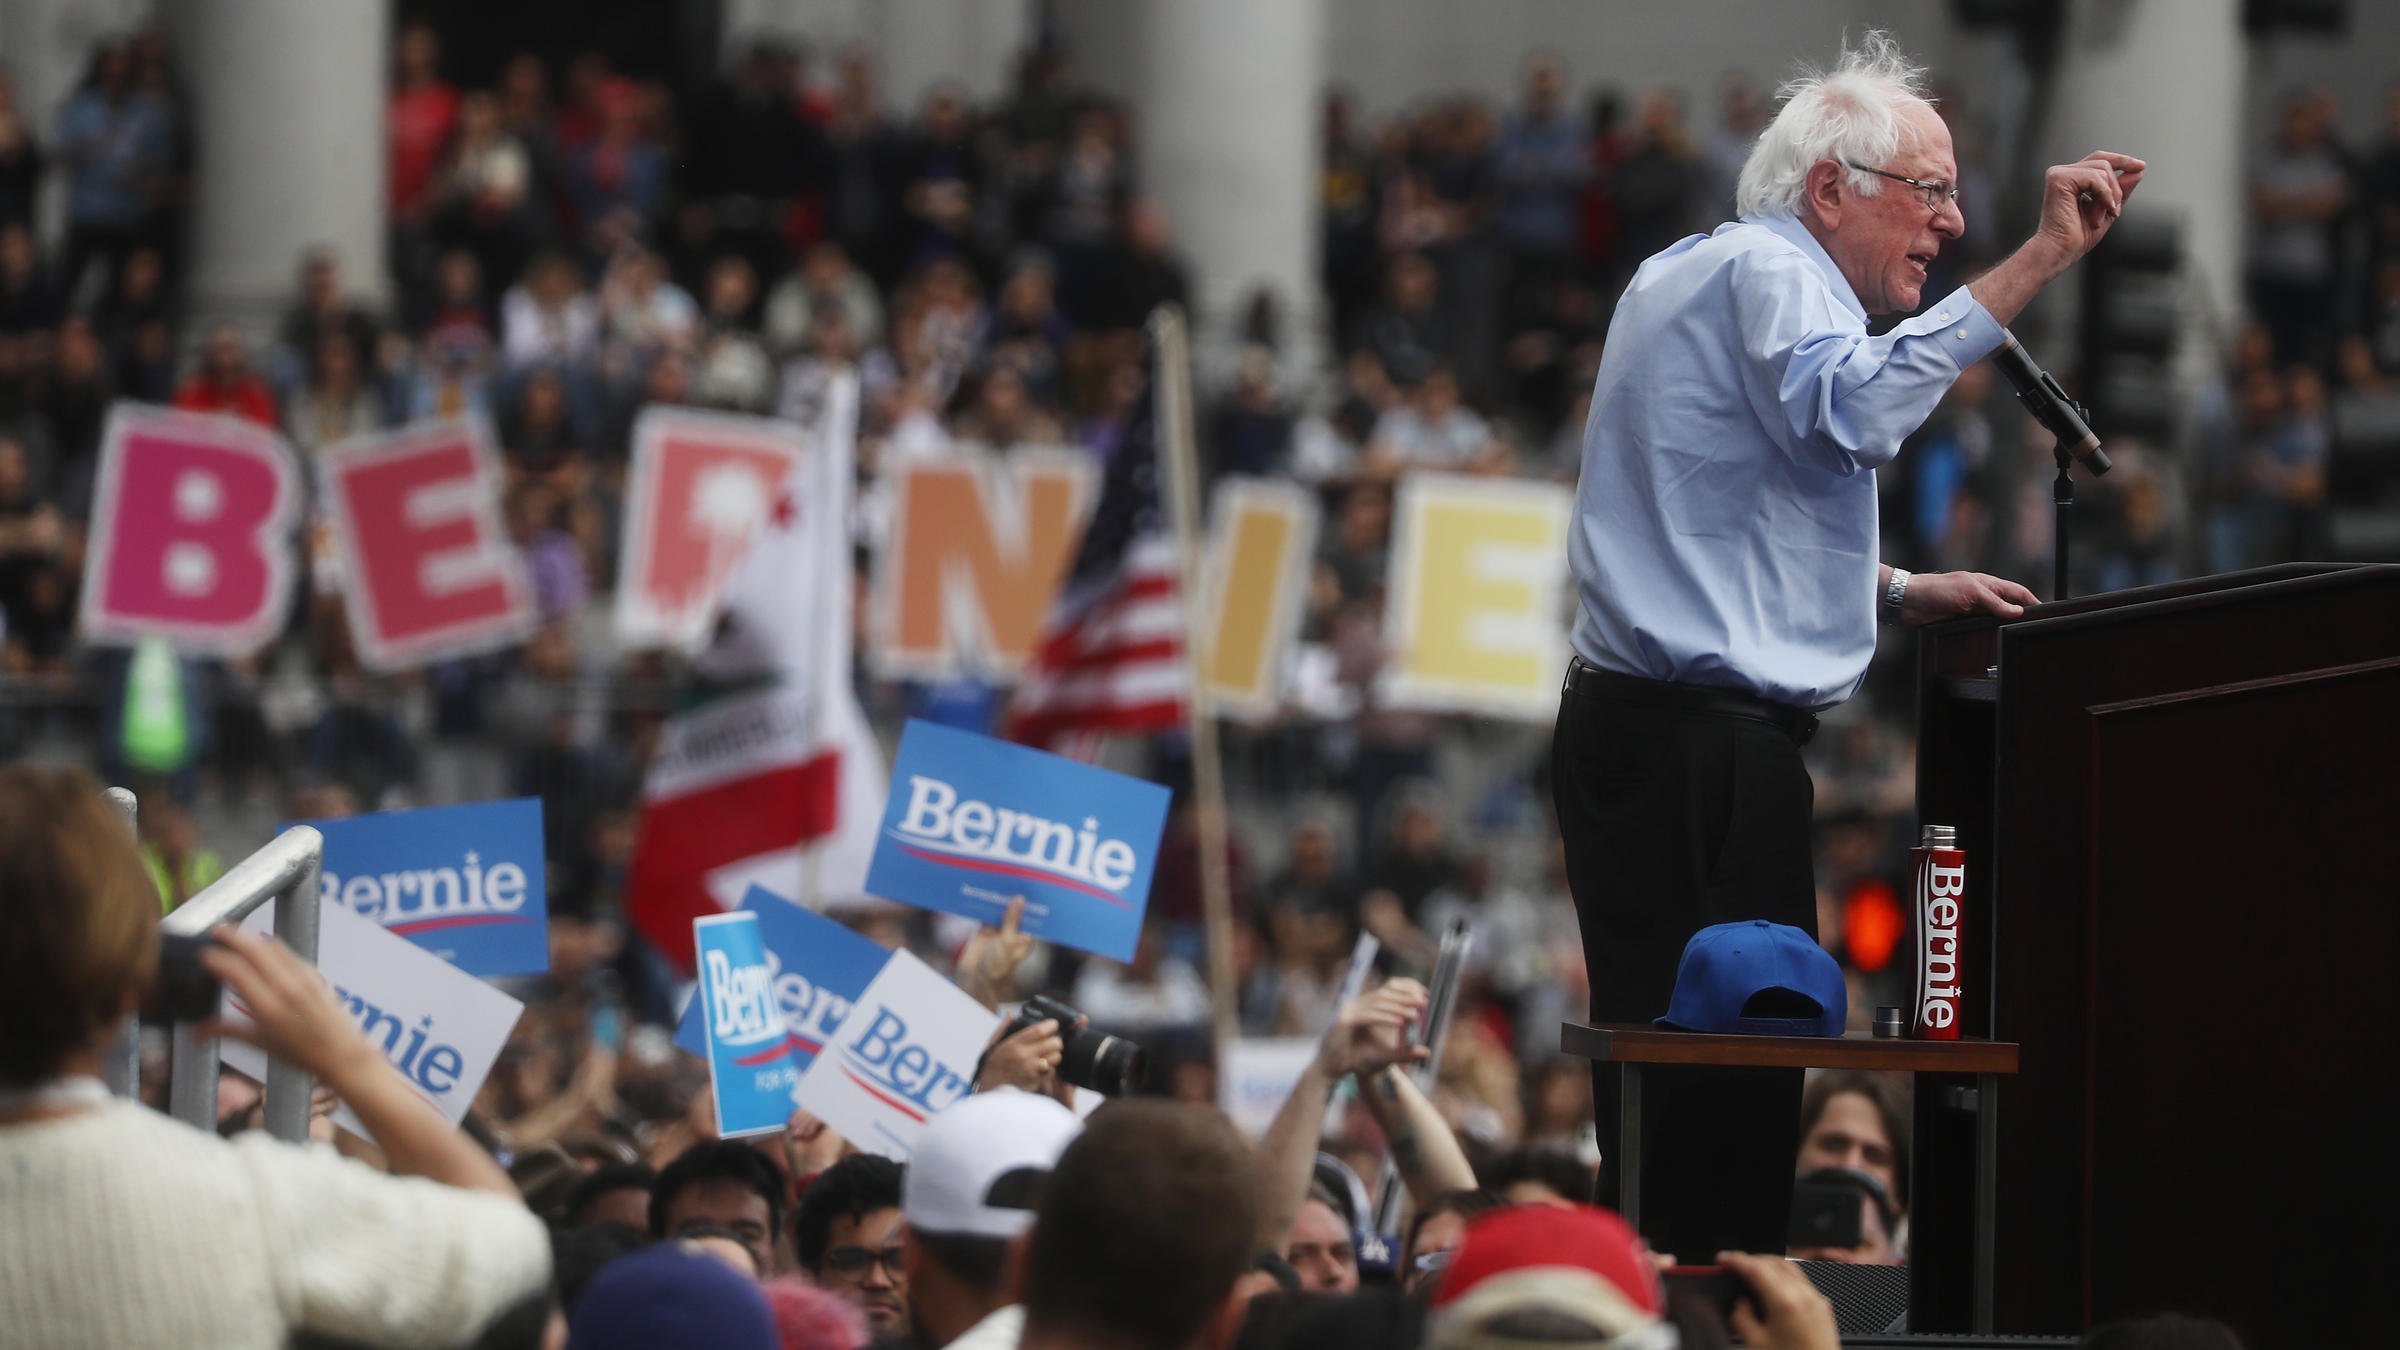 Bernie Sanders raised $18.2 million in first quarter